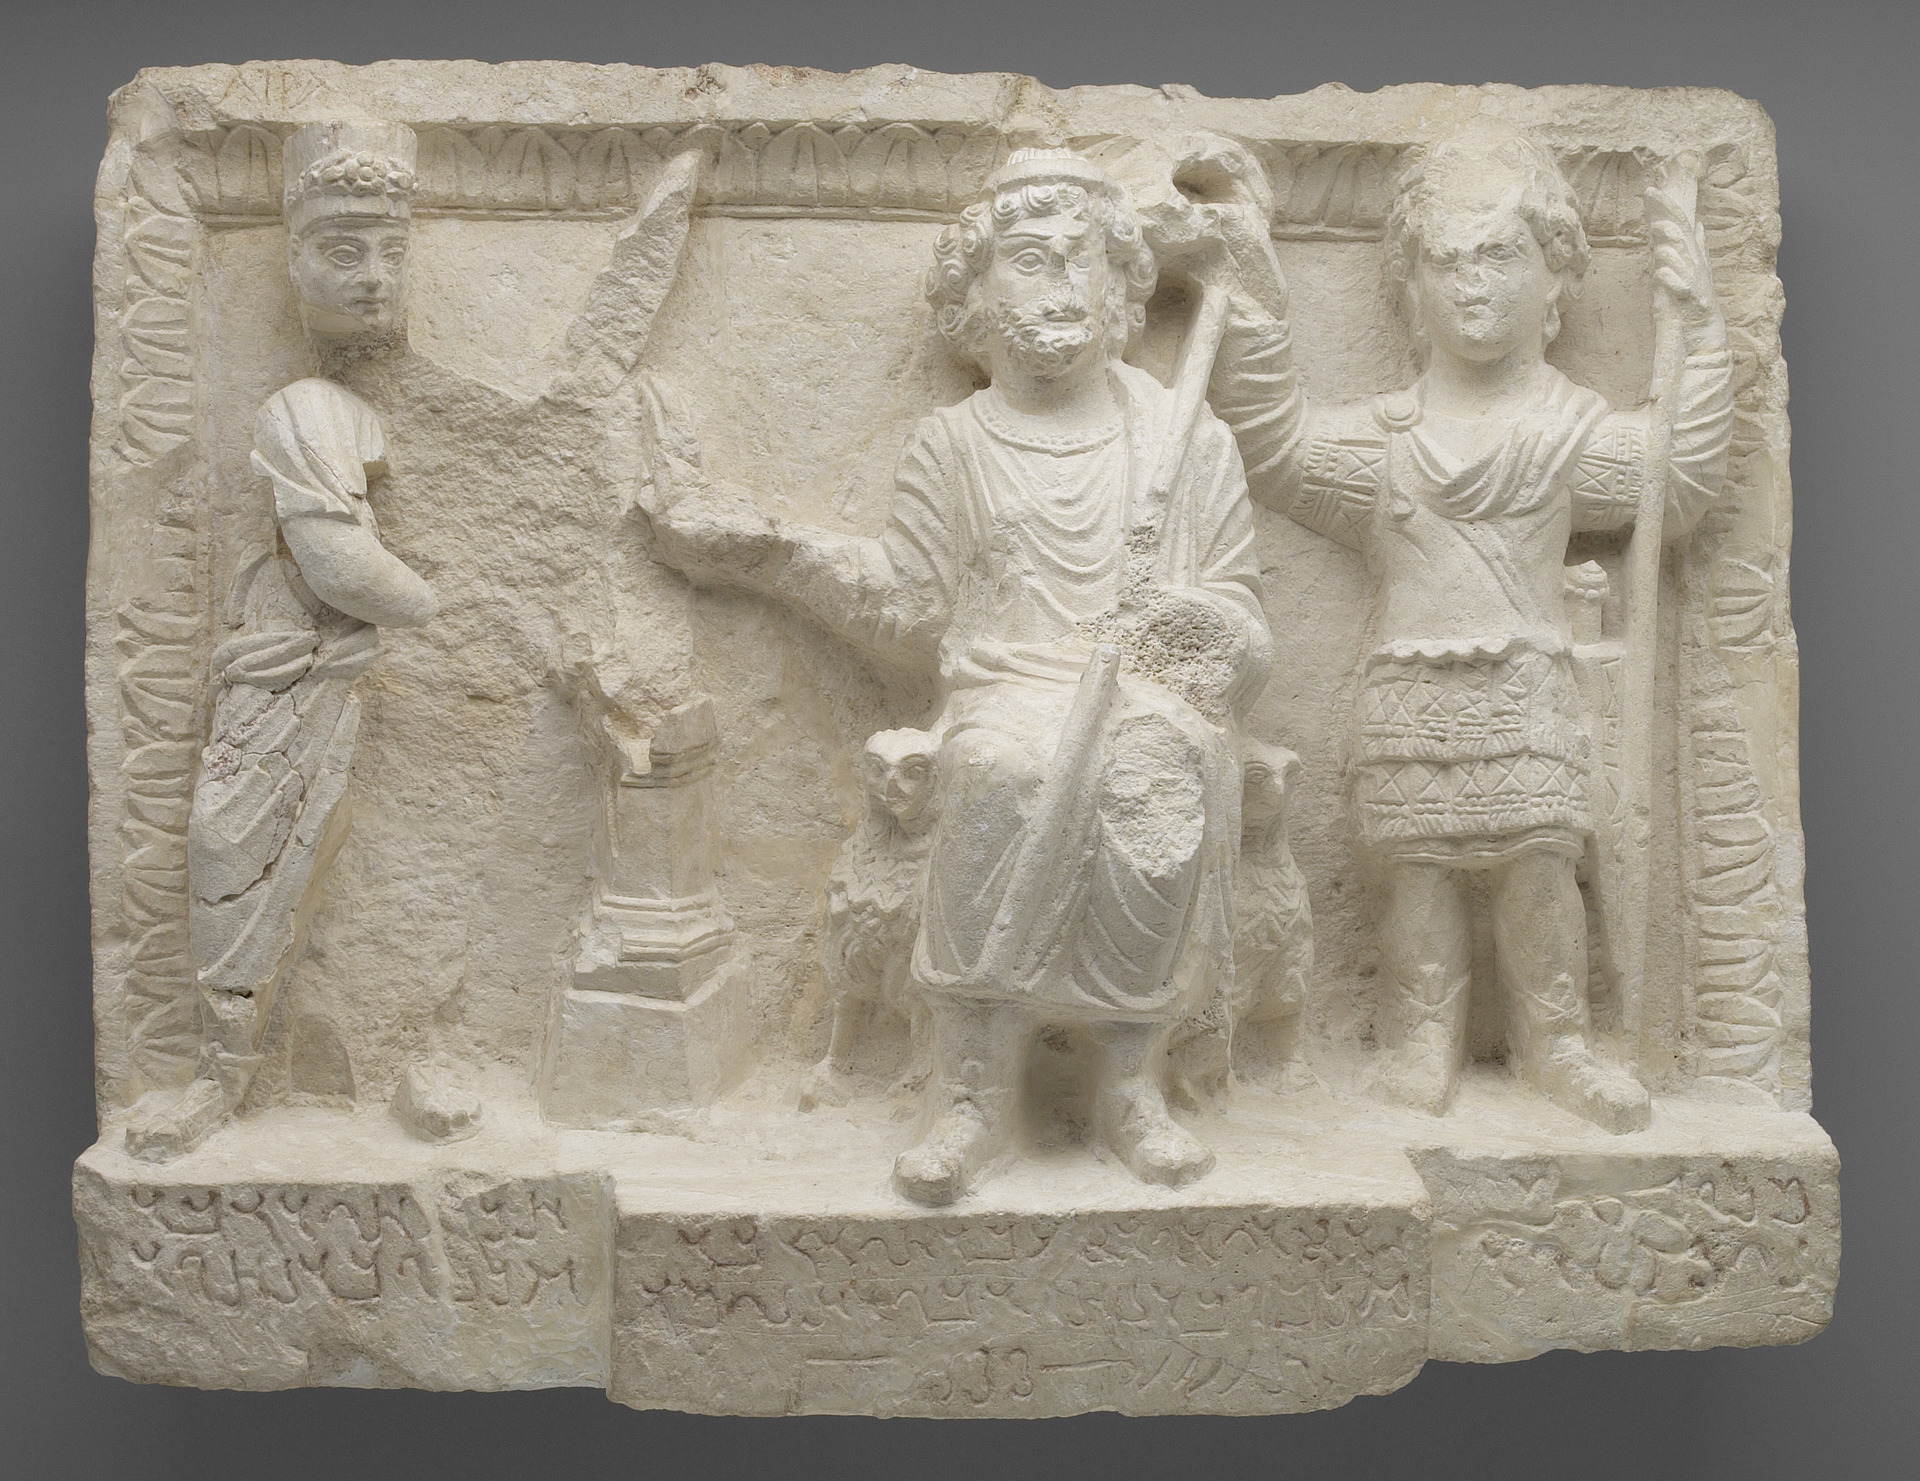 Cult_relief_of_the_Gad_(Fortune)_of_Dura,_from_the_Temple_of_the_Gadde.jpg